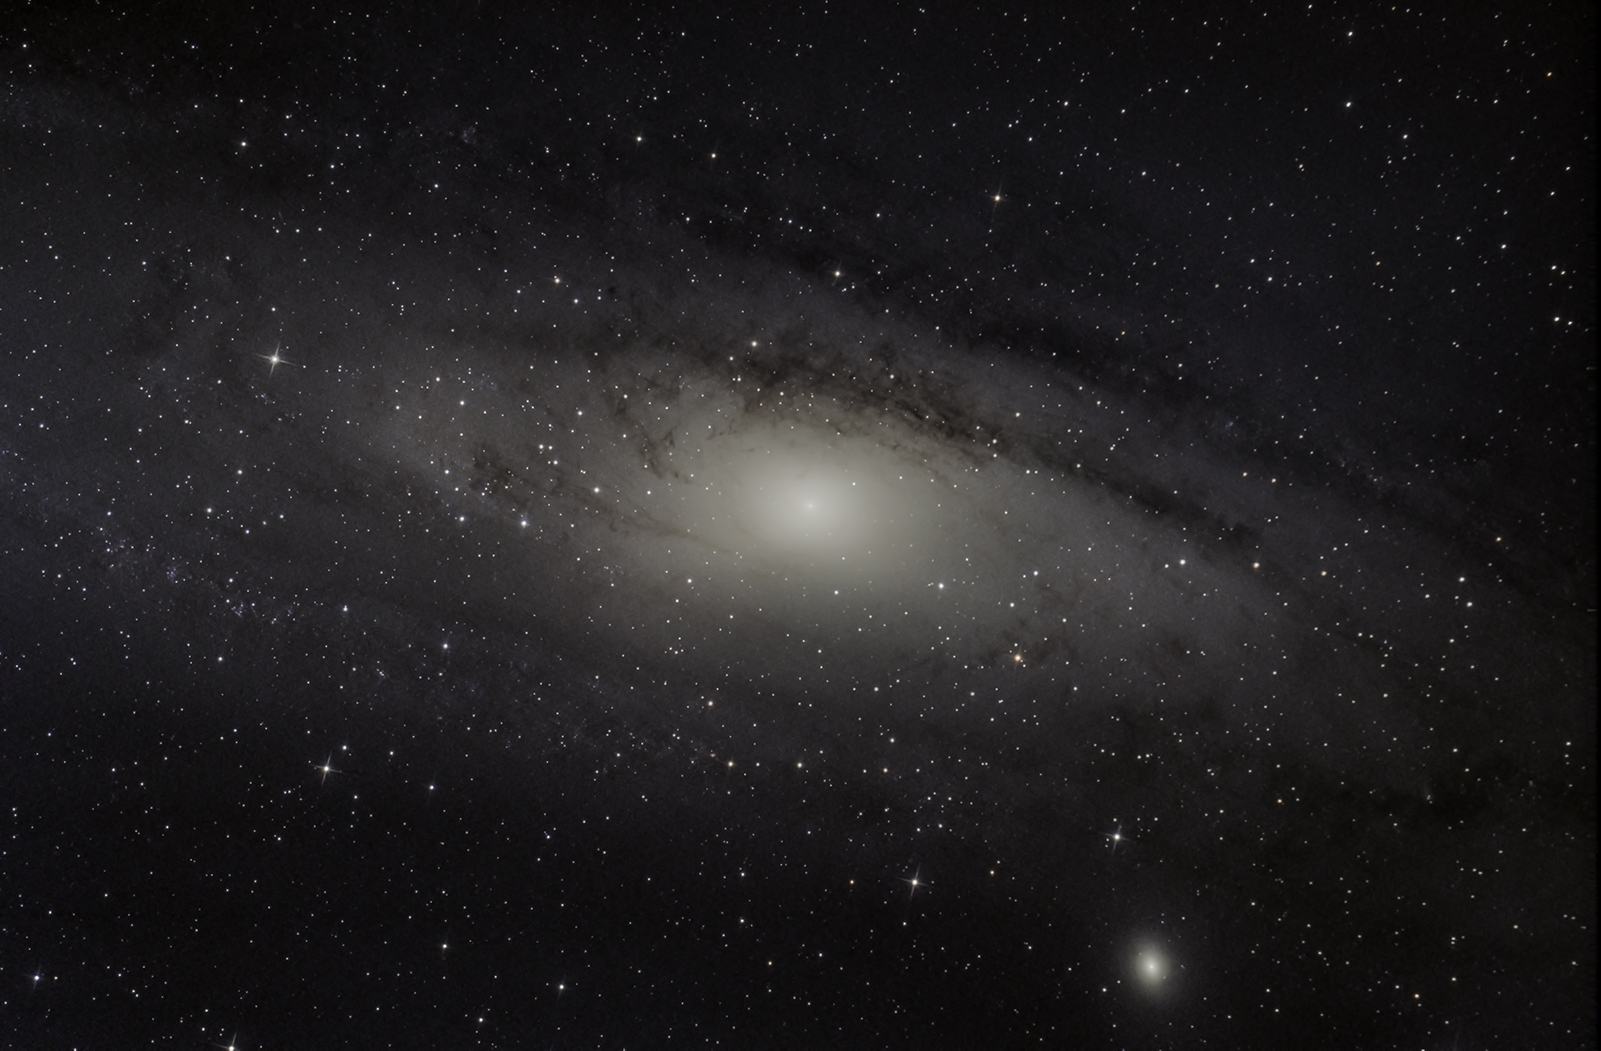 M31 second test of QHY168C